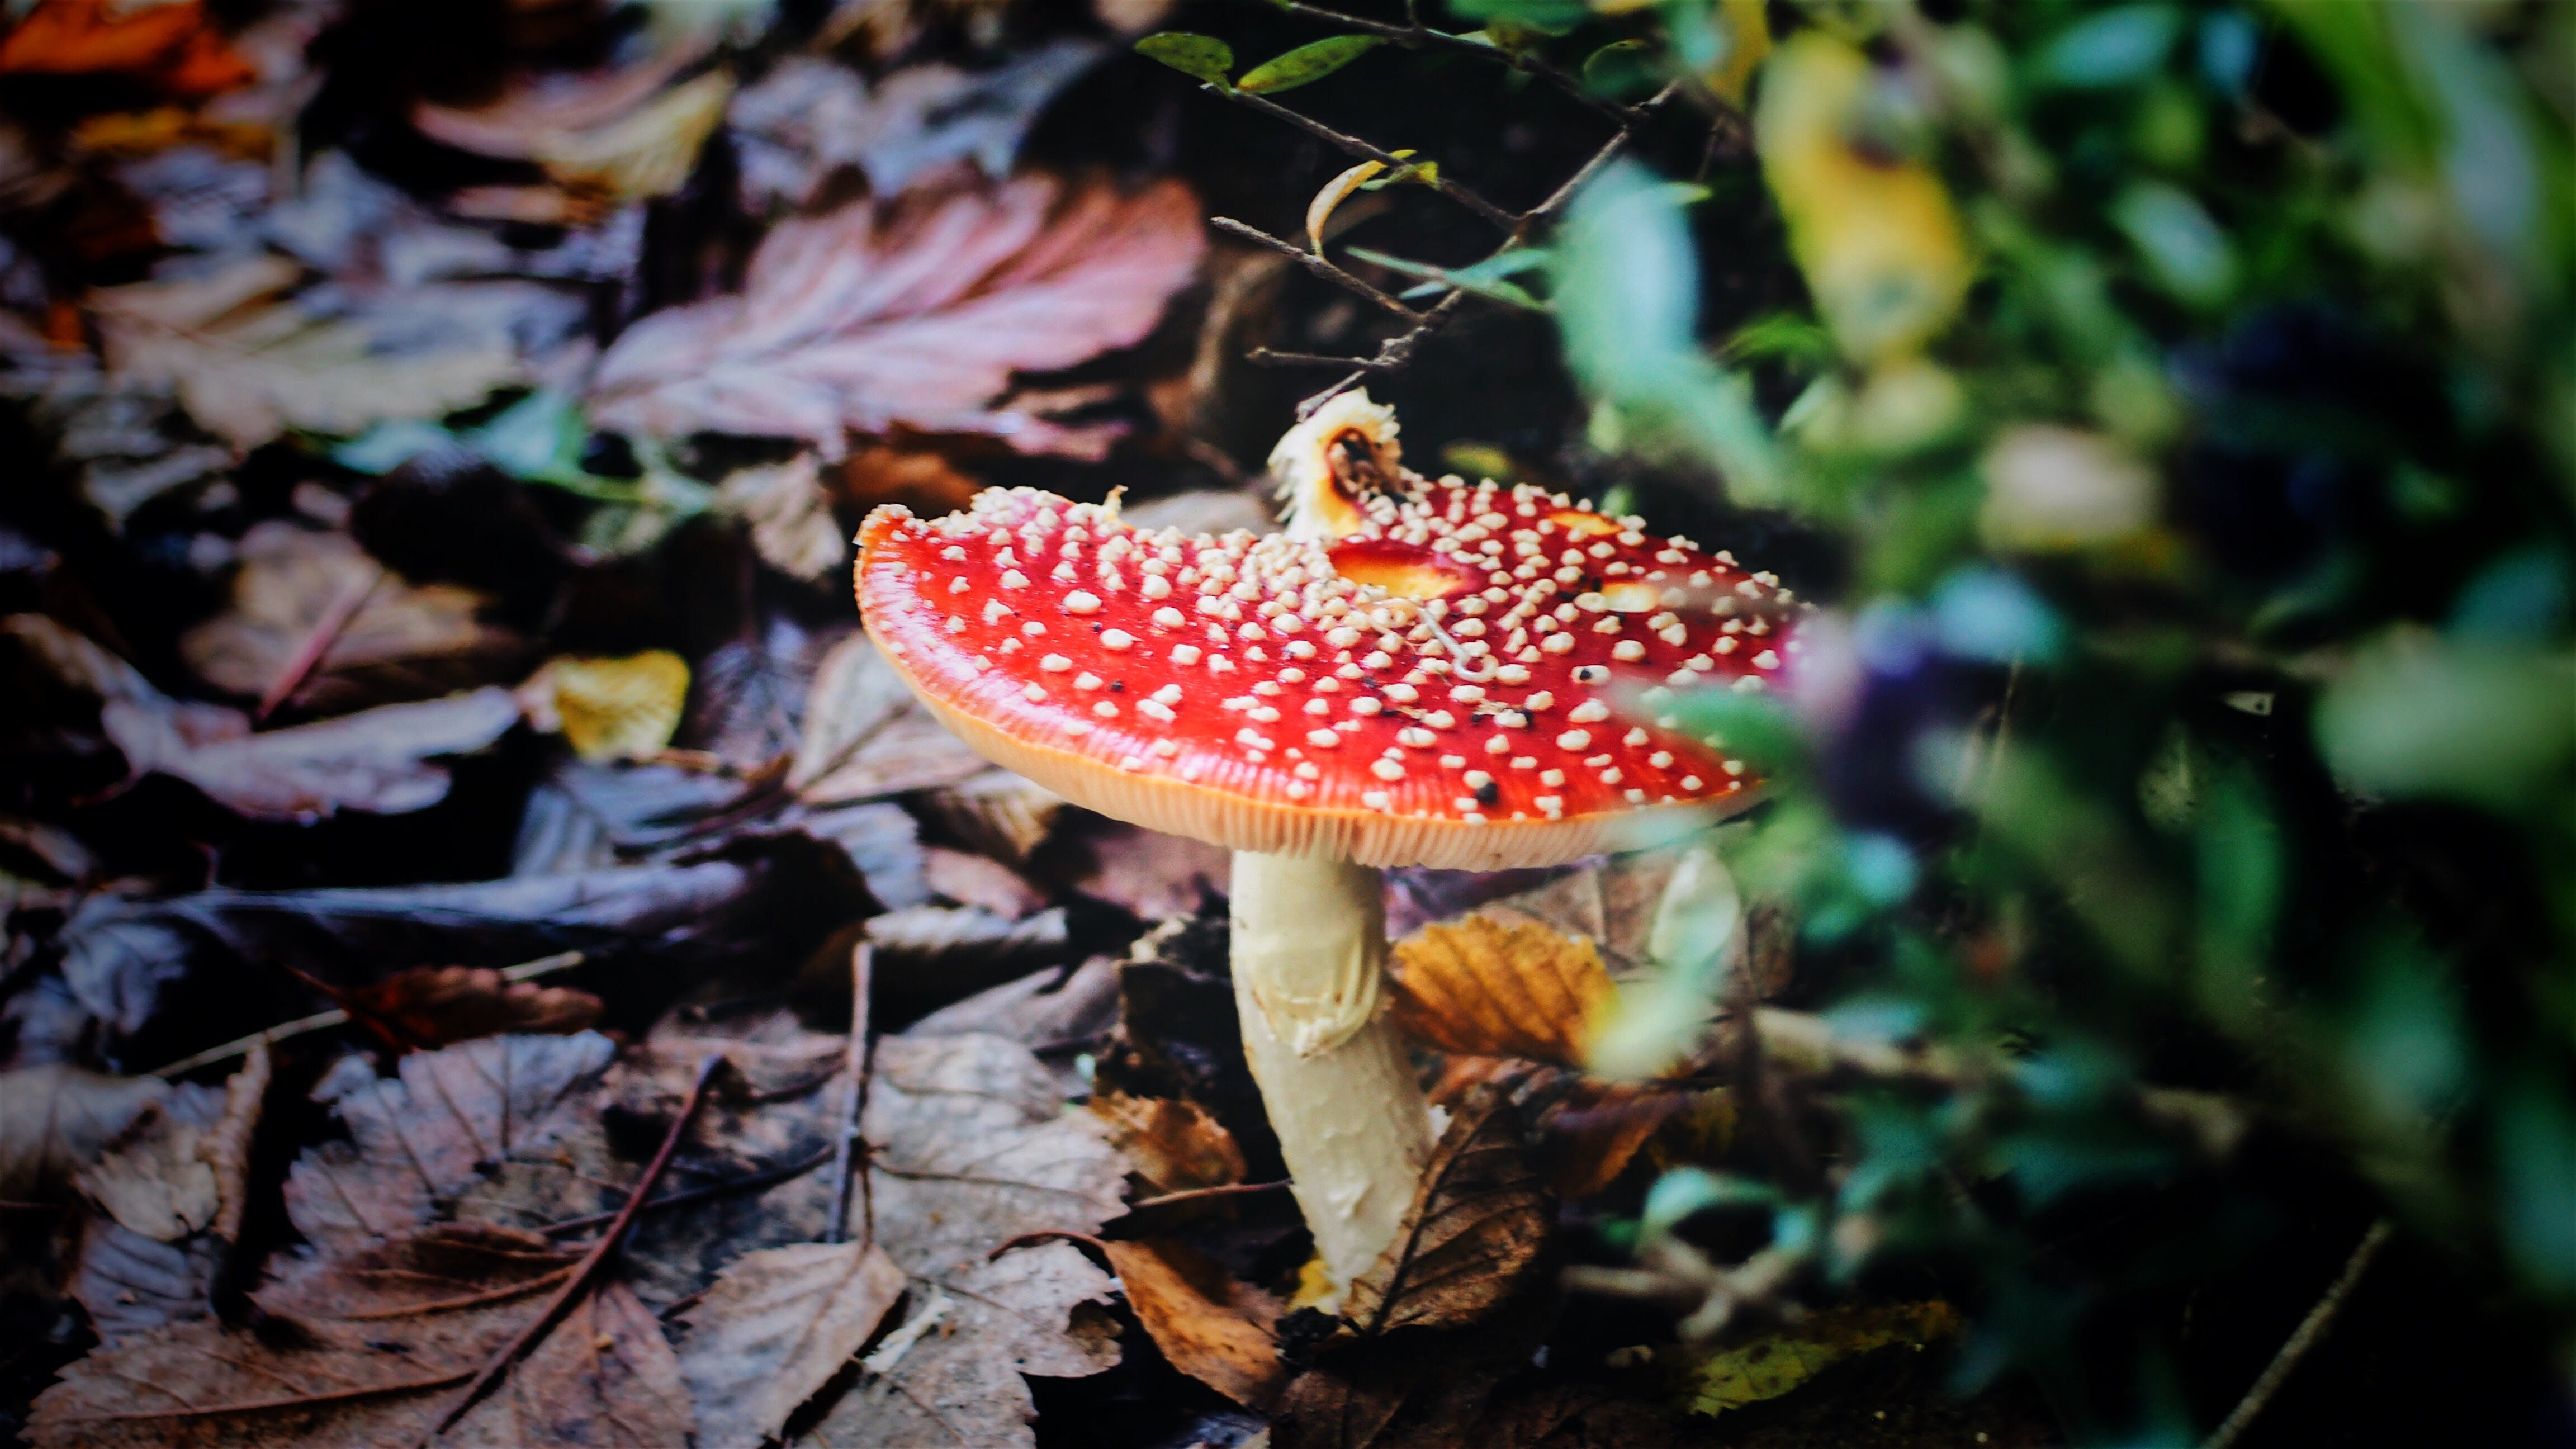 Red Mushroom in Closeup Photography